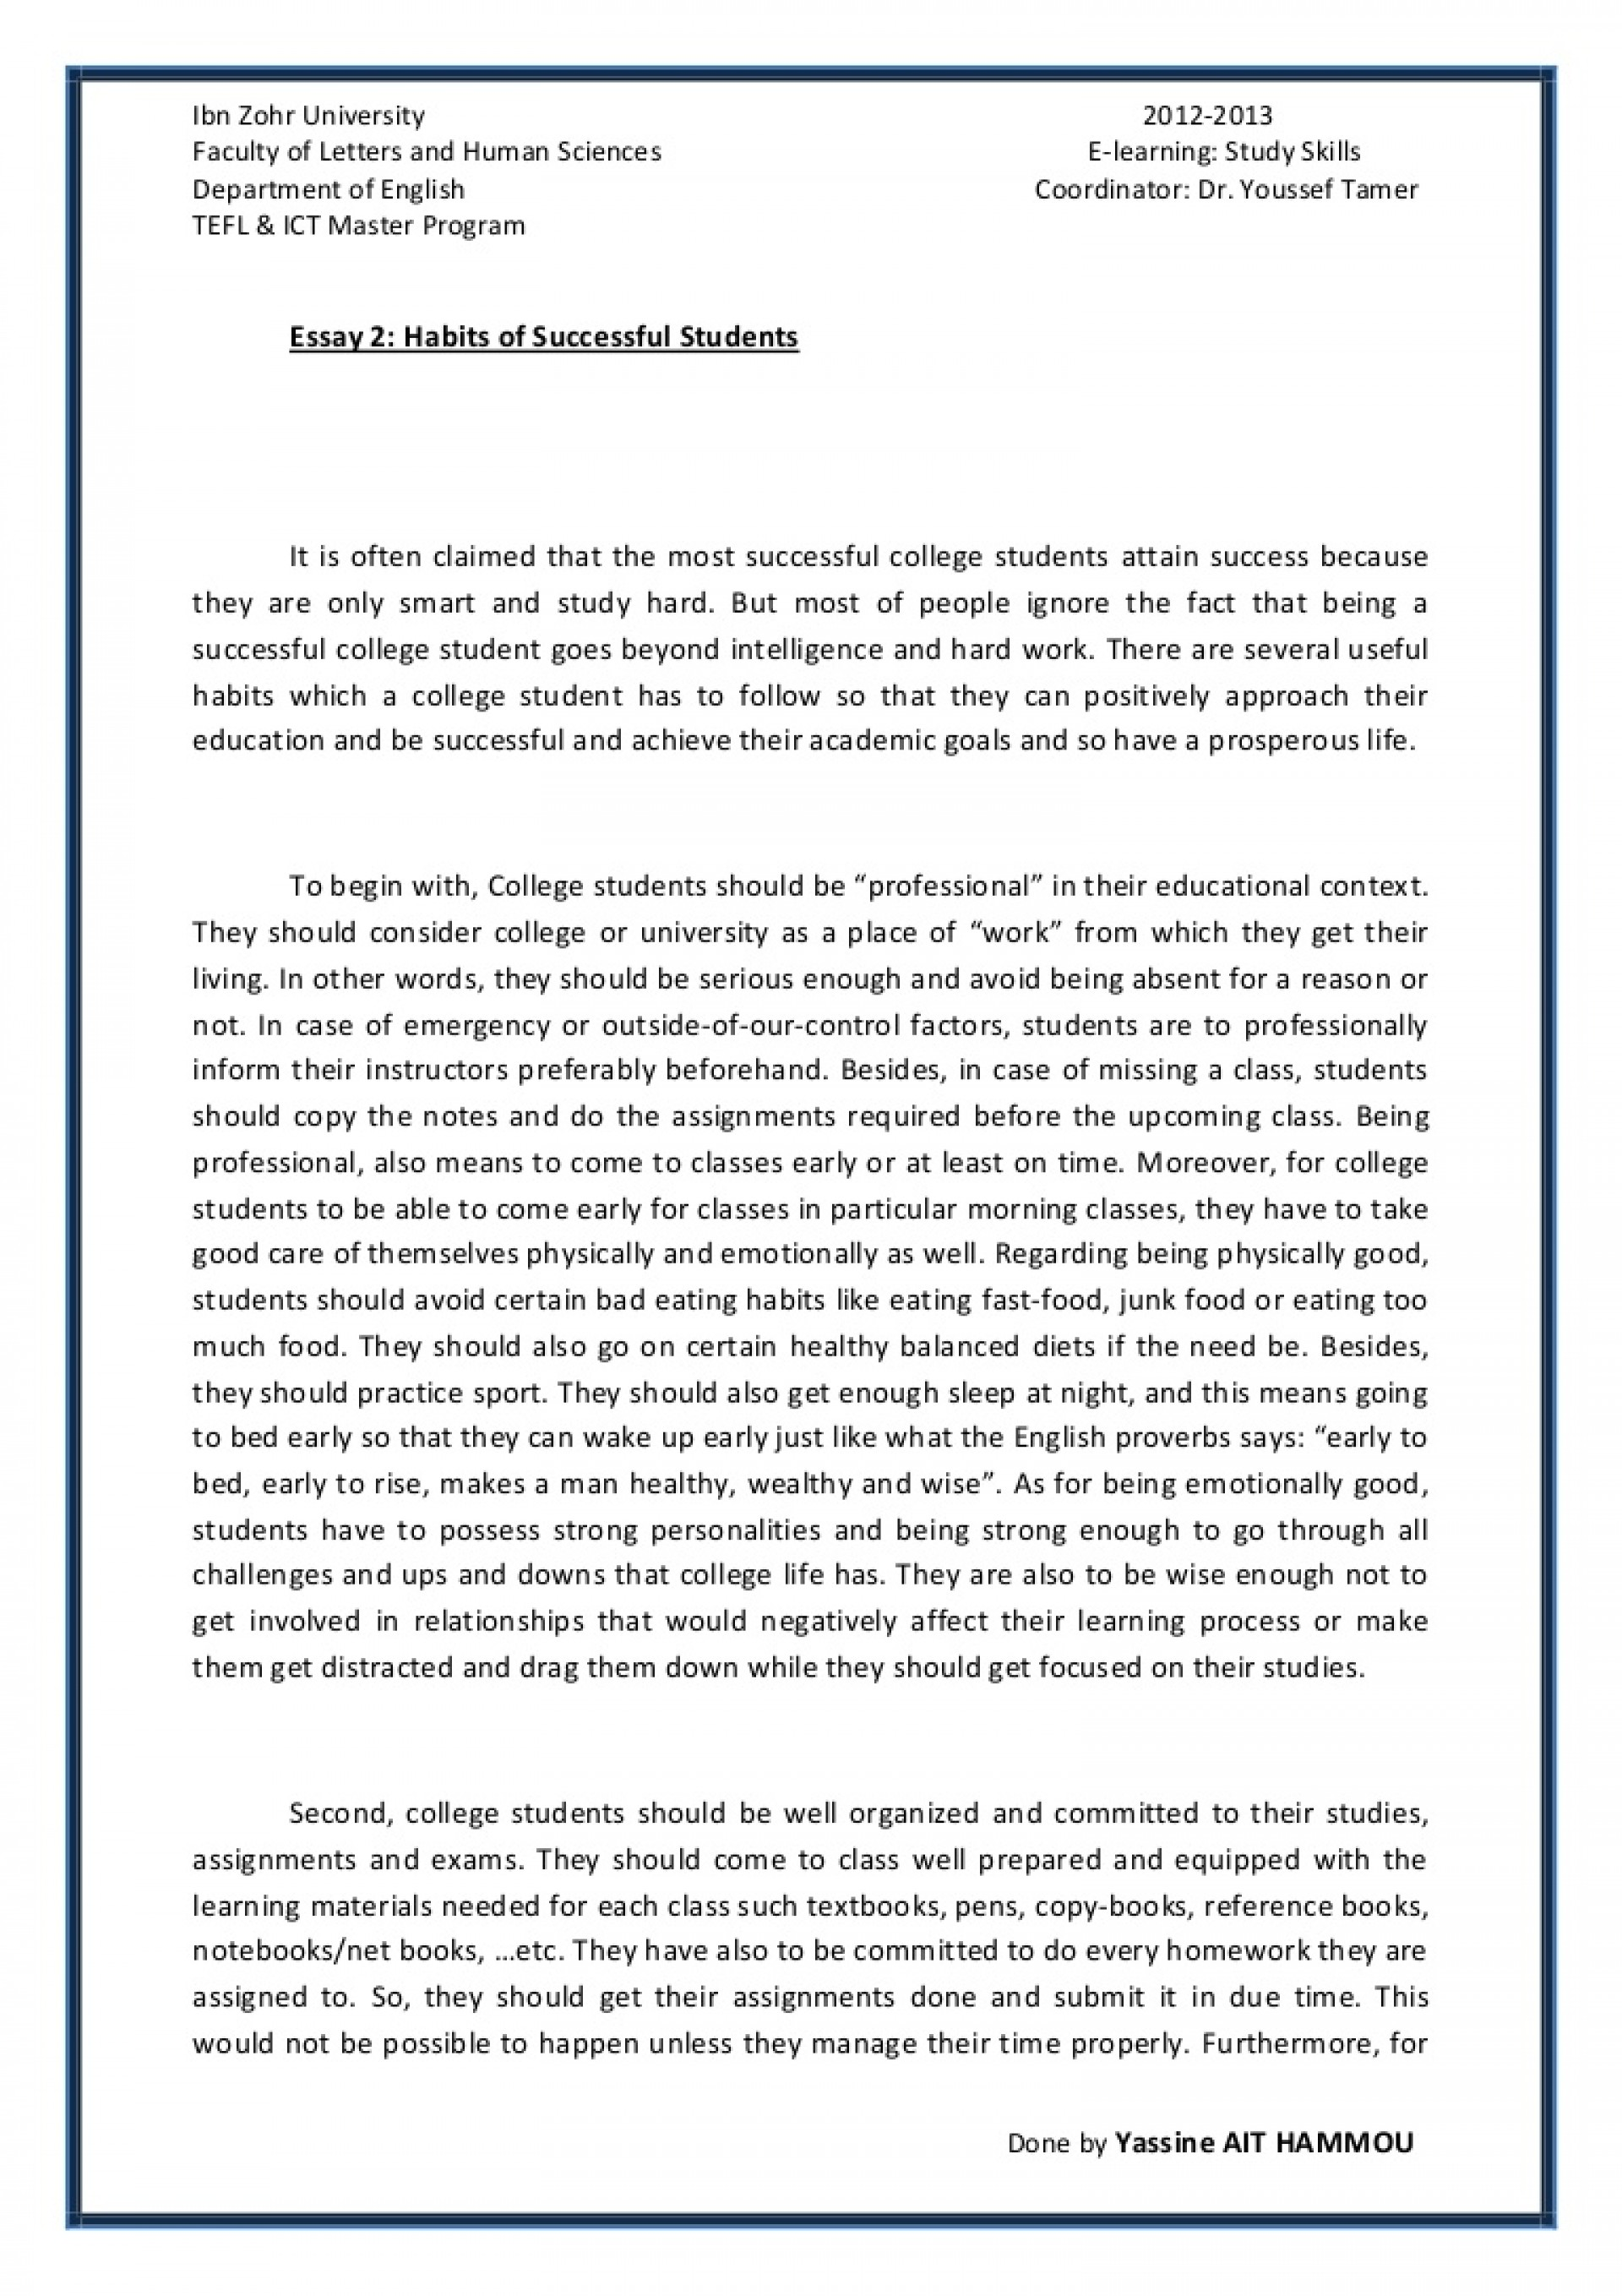 006 Essay2 Succesfulcollegestudentshabitsbyyassineaithammou Phpapp01 Thumbnail 4cbu003d1366110001 Cover Page For Research Paper Awful Harvard 1920